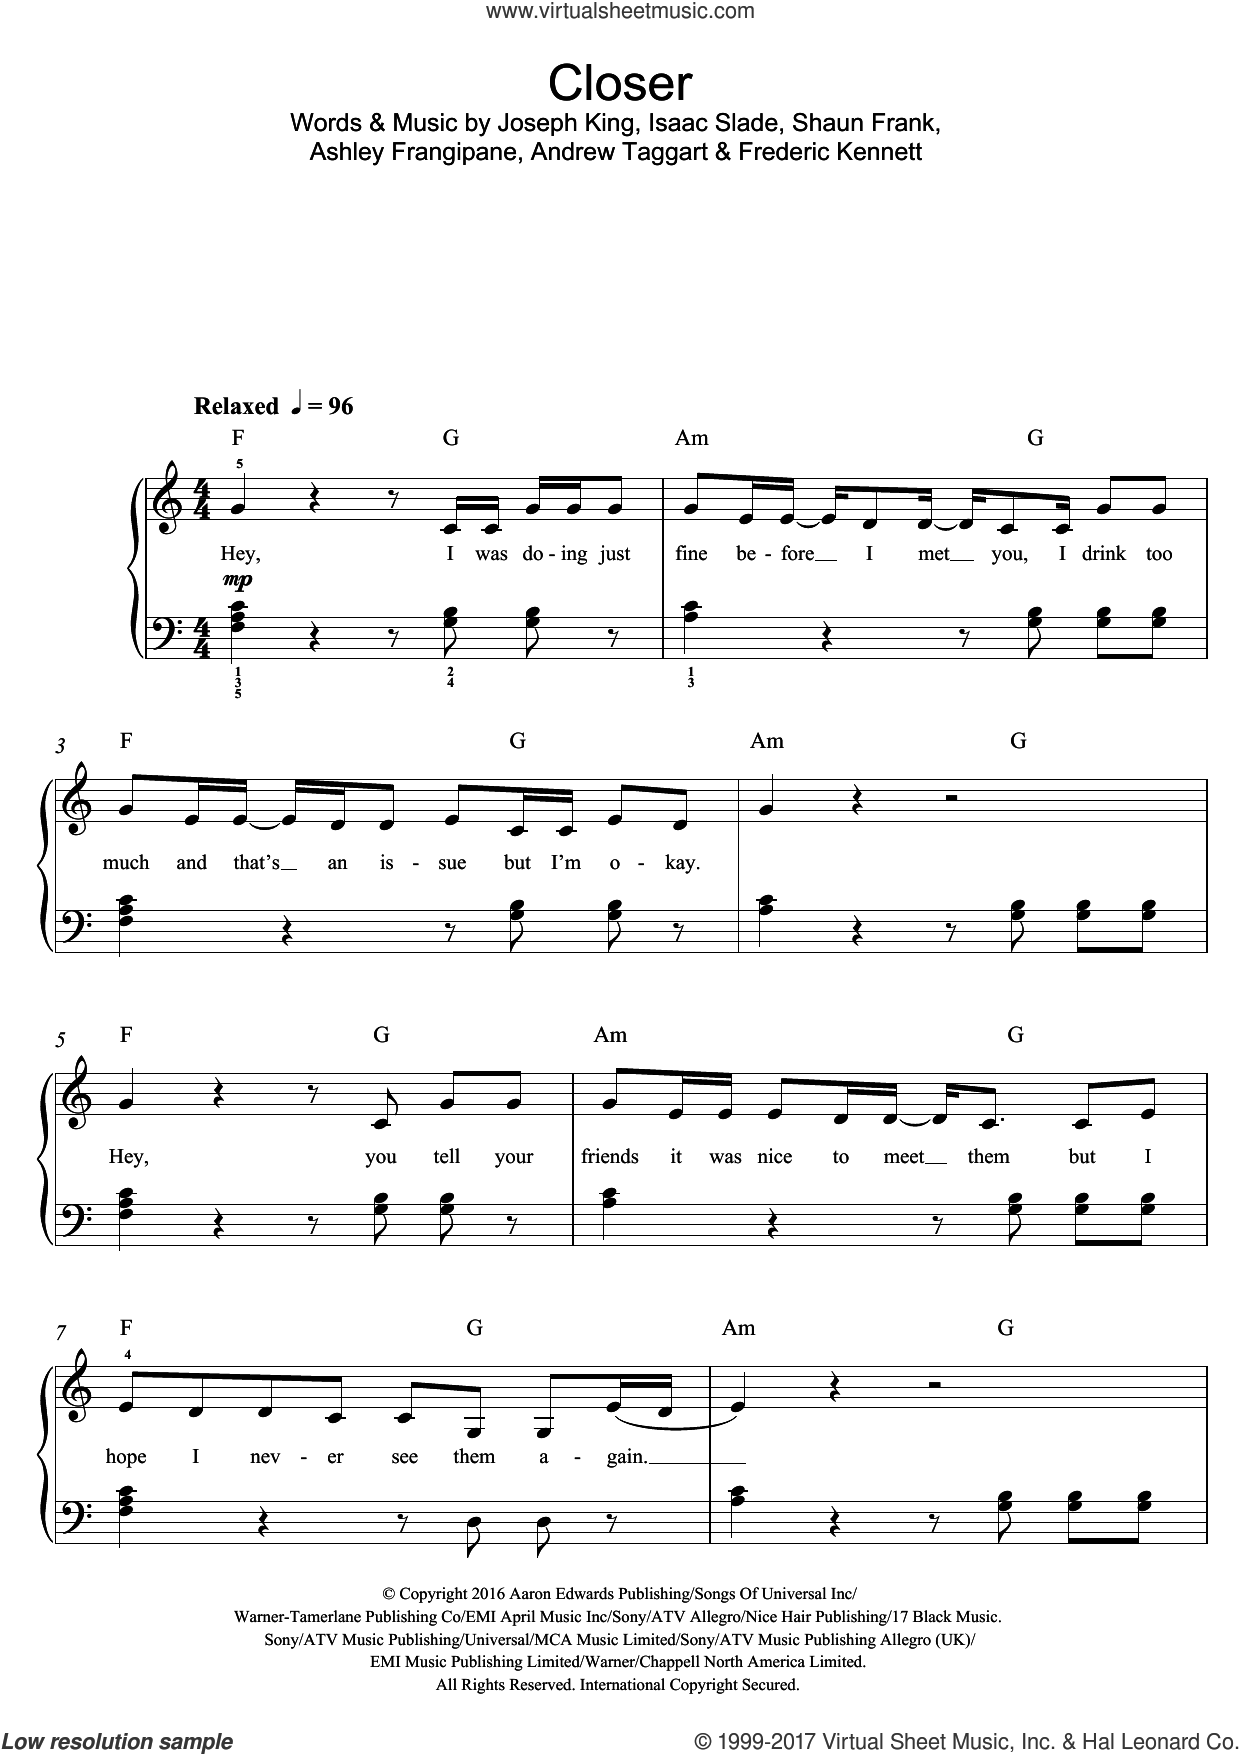 Closer (featuring Halsey) sheet music for piano solo (beginners) by The Chainsmokers, Halsey, Andrew Taggart, Ashley Frangipane, Frederic Kennett, Isaac Slade, Joseph King and Shaun Frank, beginner piano (beginners)